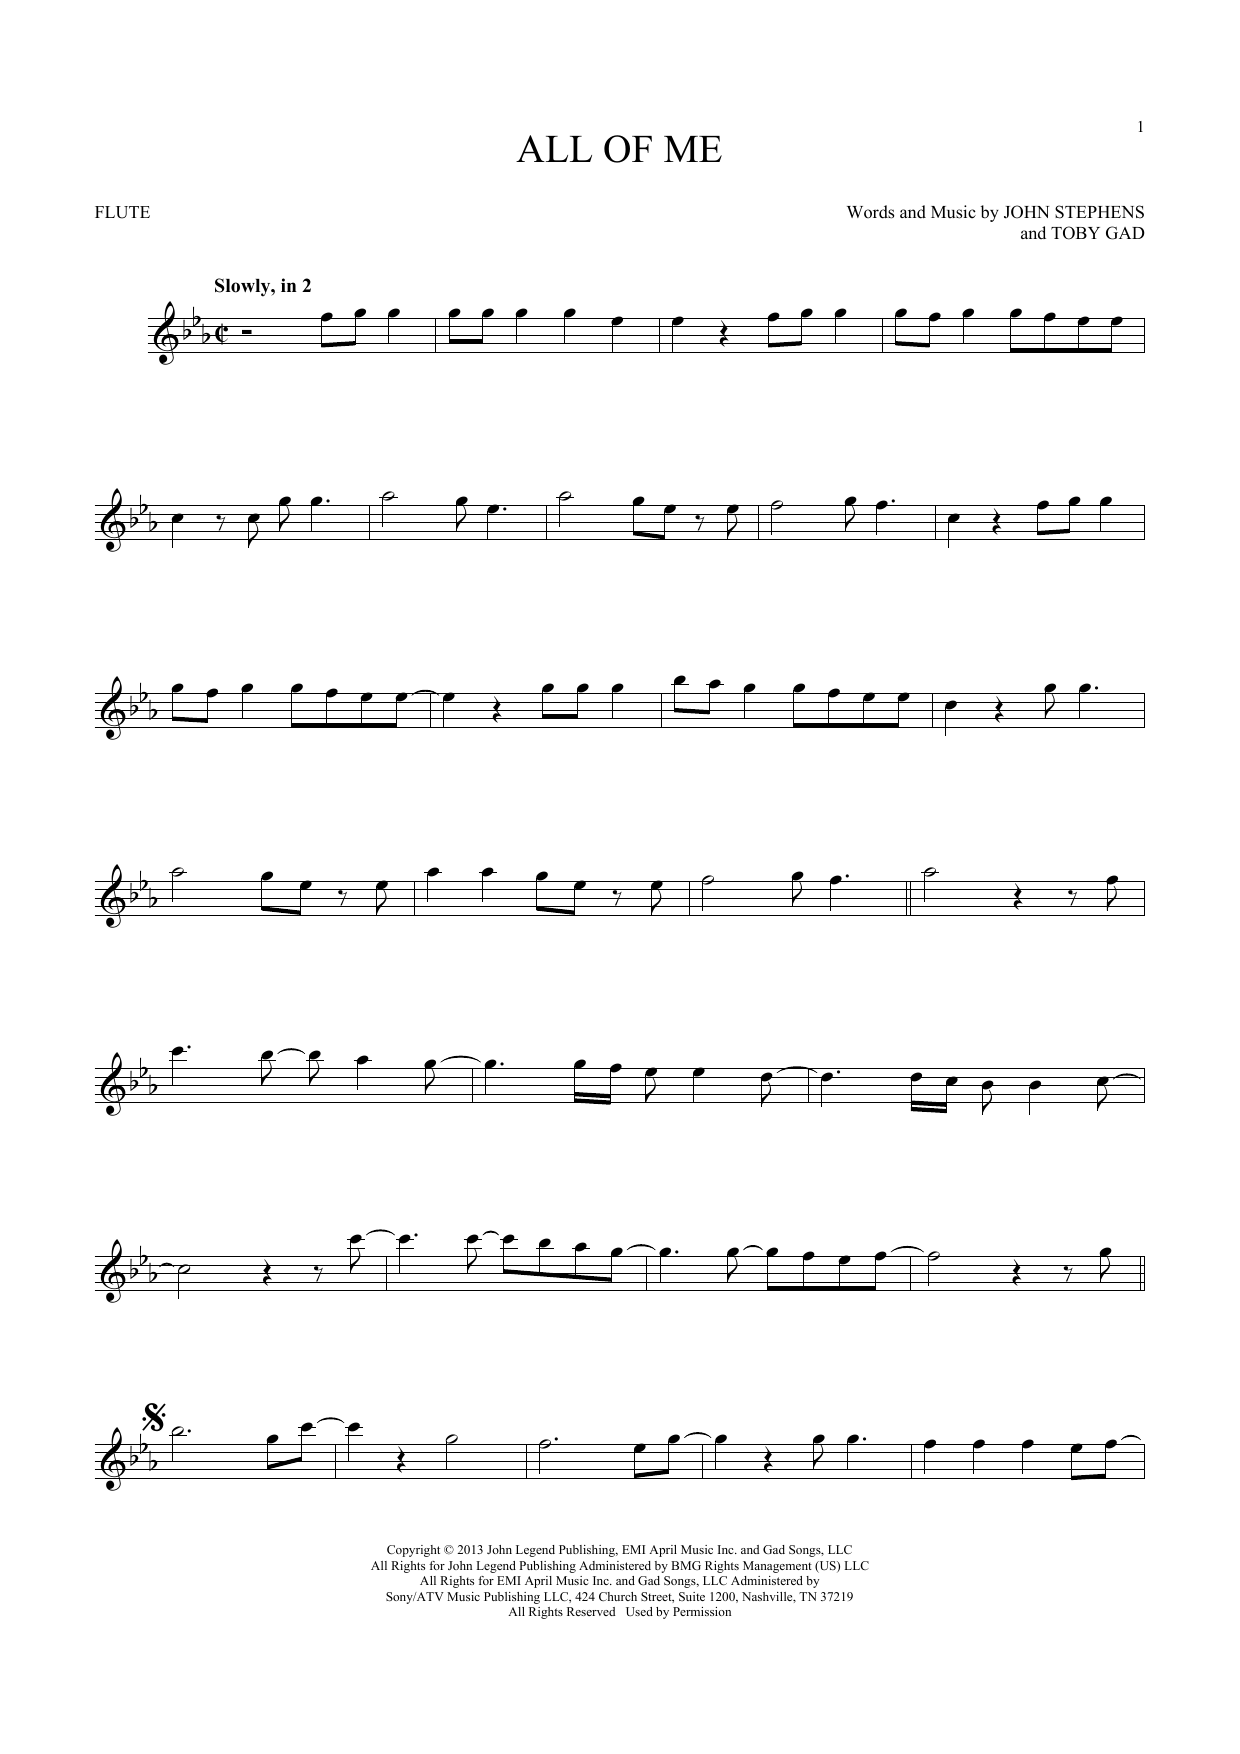 All Of Me (Flute Solo)